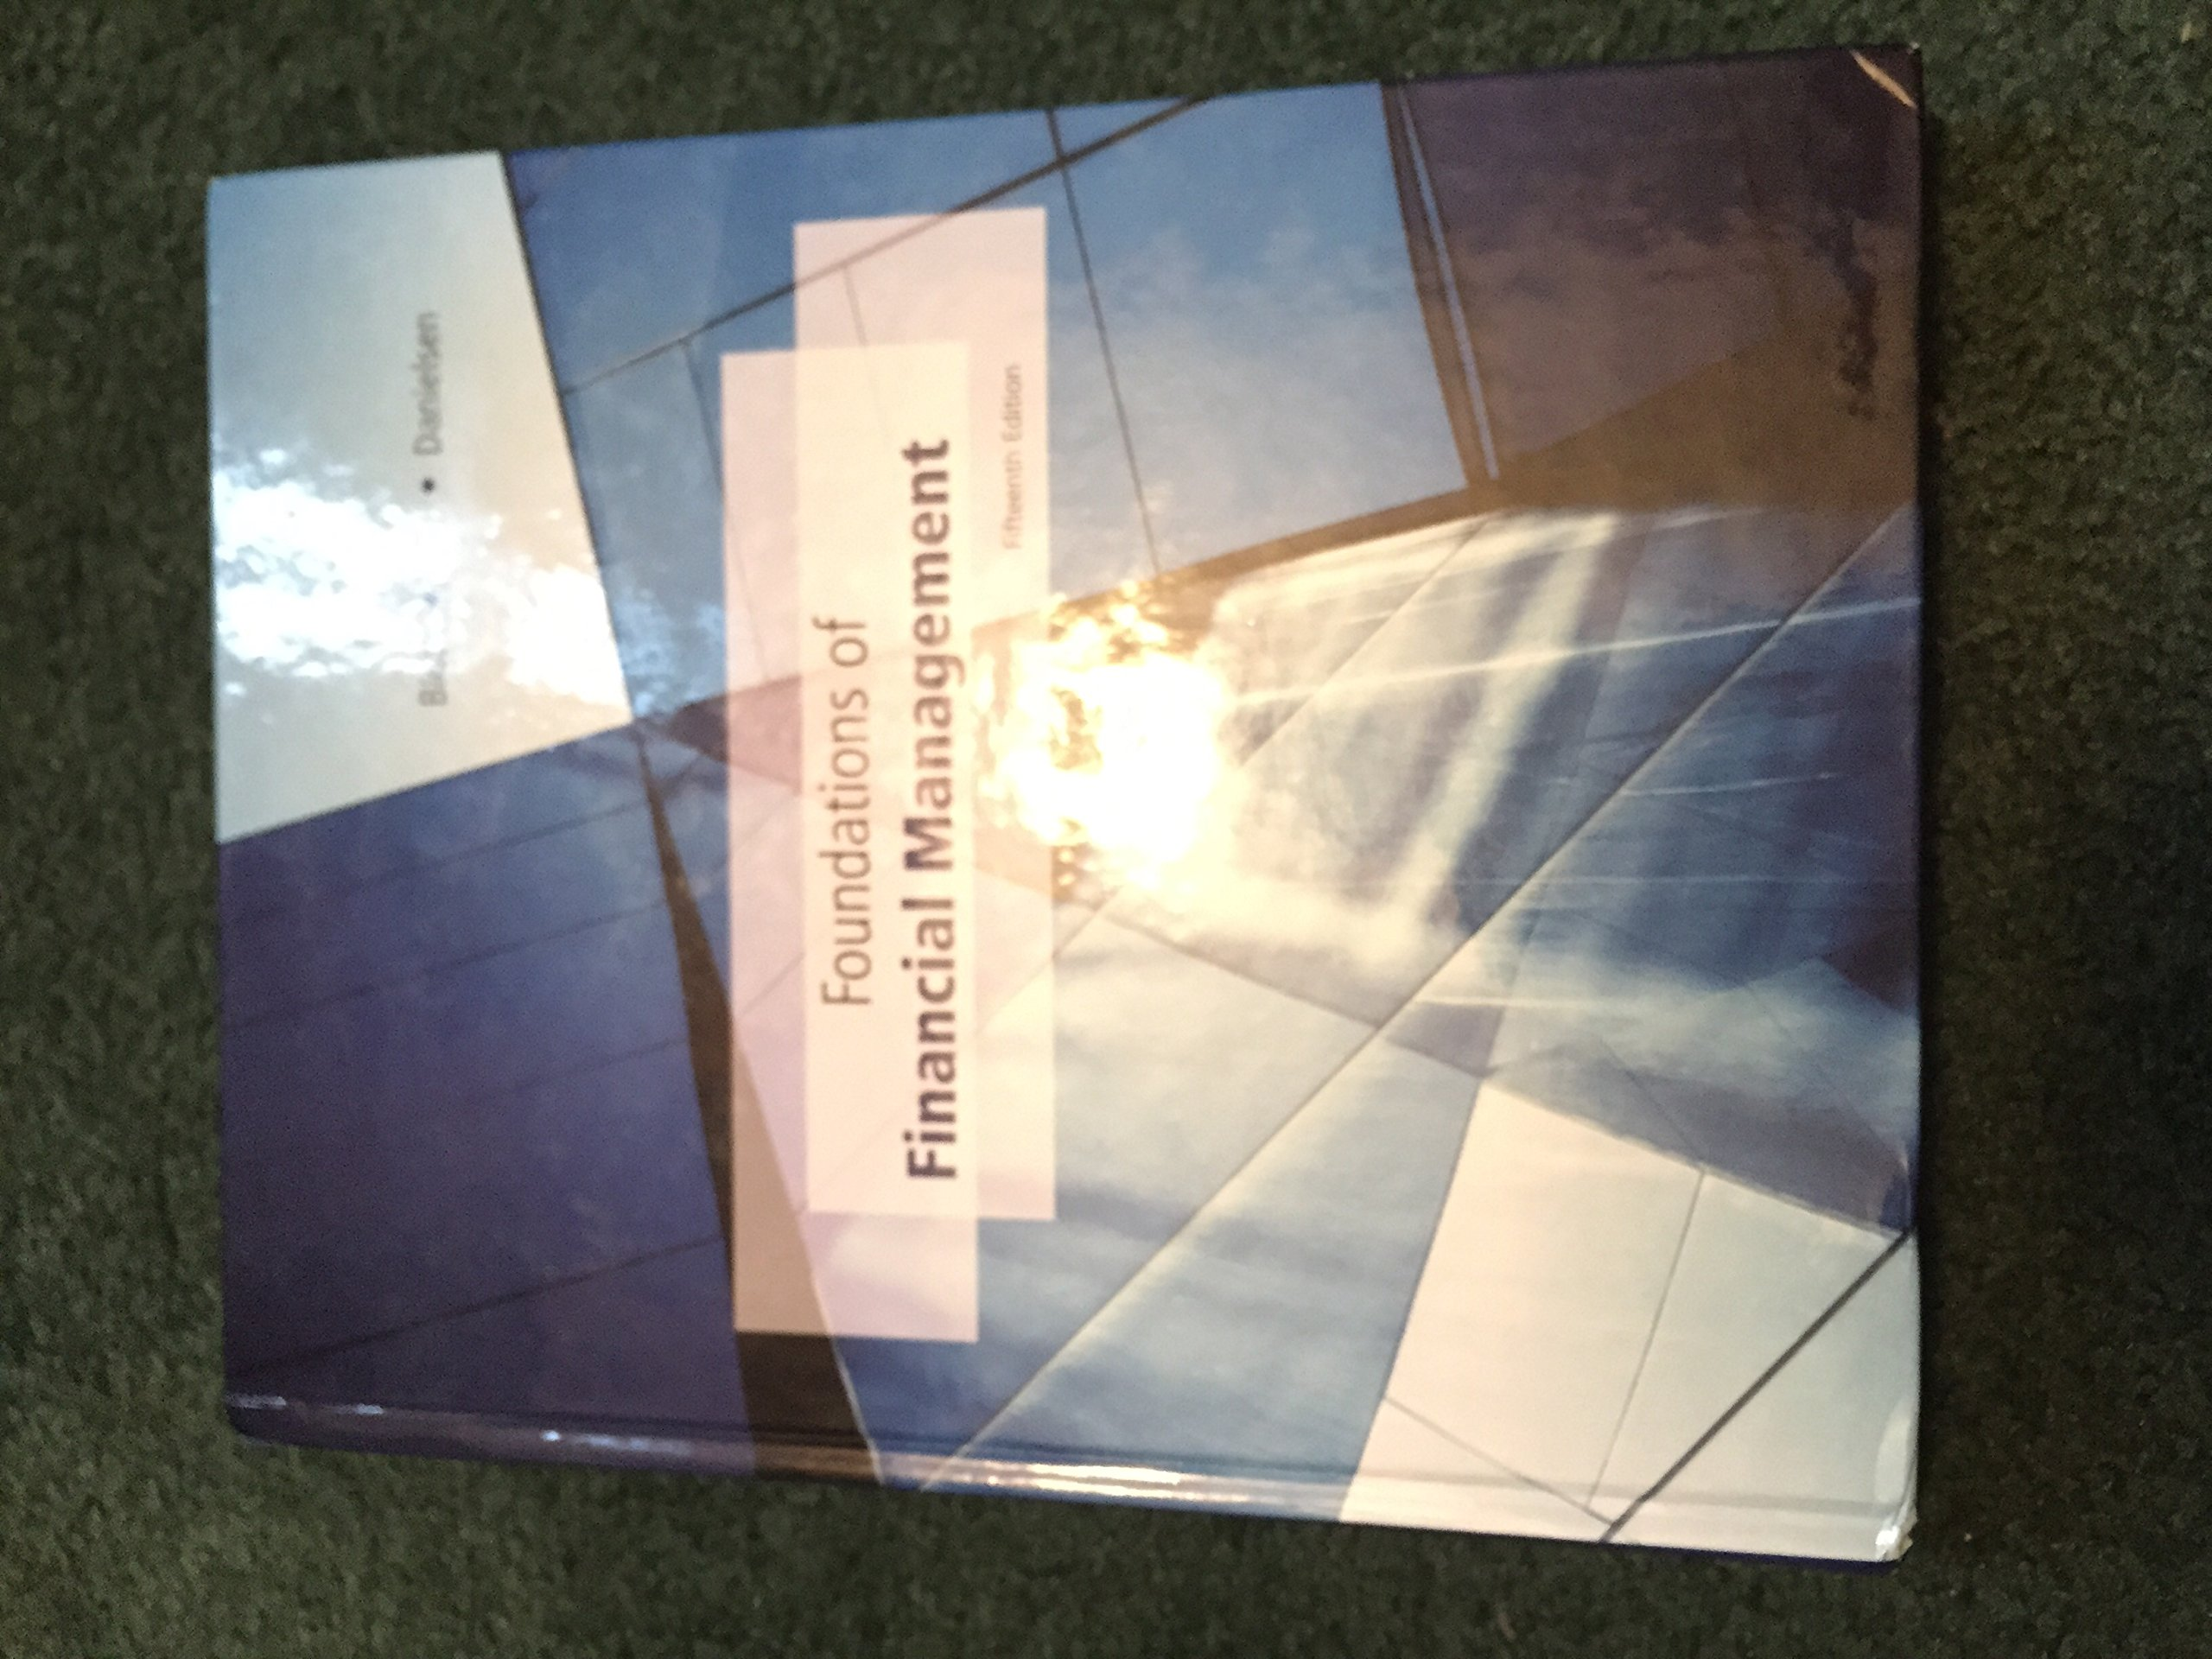 Foundations of financial management 15th edition stanley b block foundations of financial management 15th edition stanley b block geoffrey a hirt bartley r danielsen 9780077861612 amazon books fandeluxe Gallery